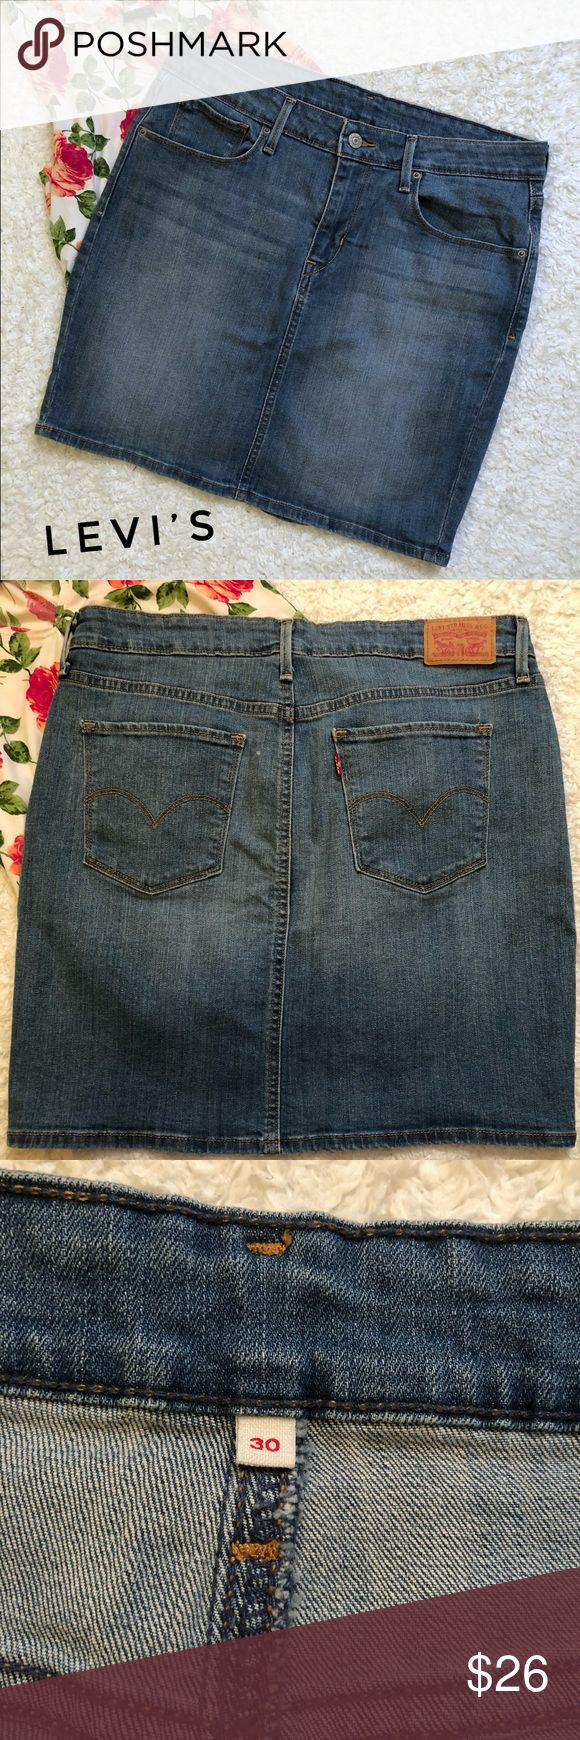 Levi's Denim Skirt In excellent condition. No stains or rips. Has a good amount of stretch. Measurements on pictures above. Any questions pls ask me. Bundle to save and offers are welcome :) Levi's Skirts Mini